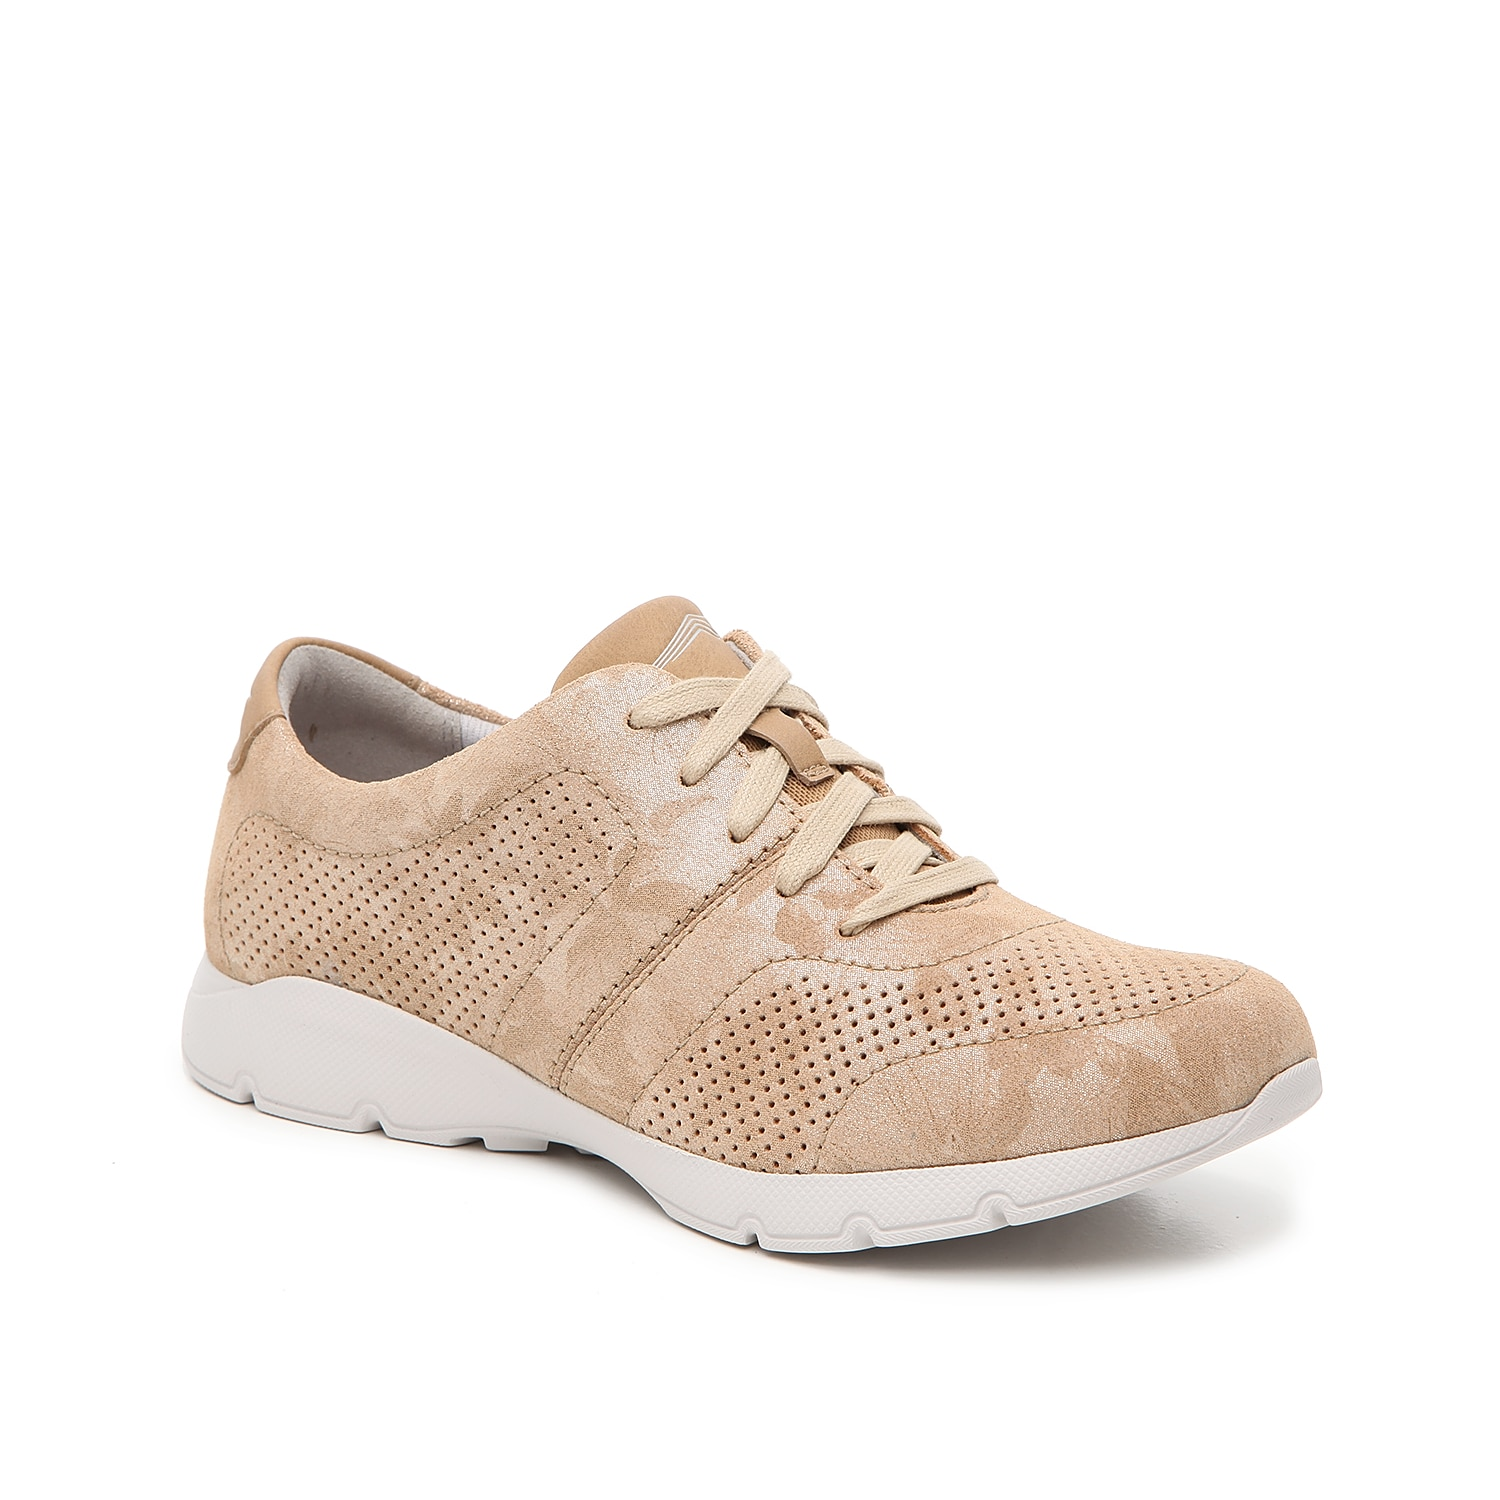 Lace up the Alissa sneaker from Dansko and be on the go in no time! These nubuck leather low-tops feature a removable insole for custom comfort all-day long.